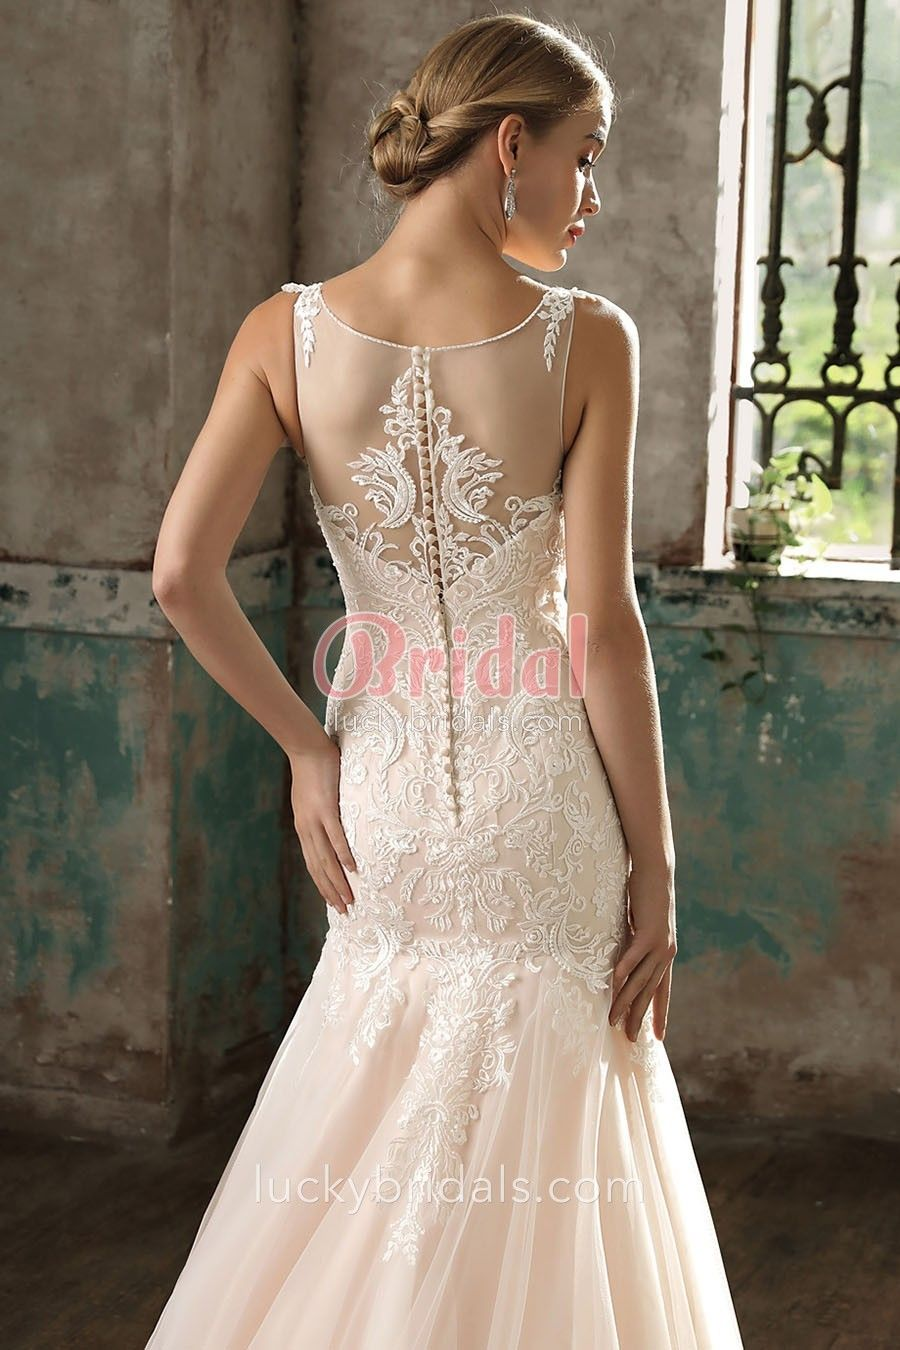 Dropped waist wedding dress  Classic Blush Lace Satin and Tulle Illusion Mermaid Dropped Waist